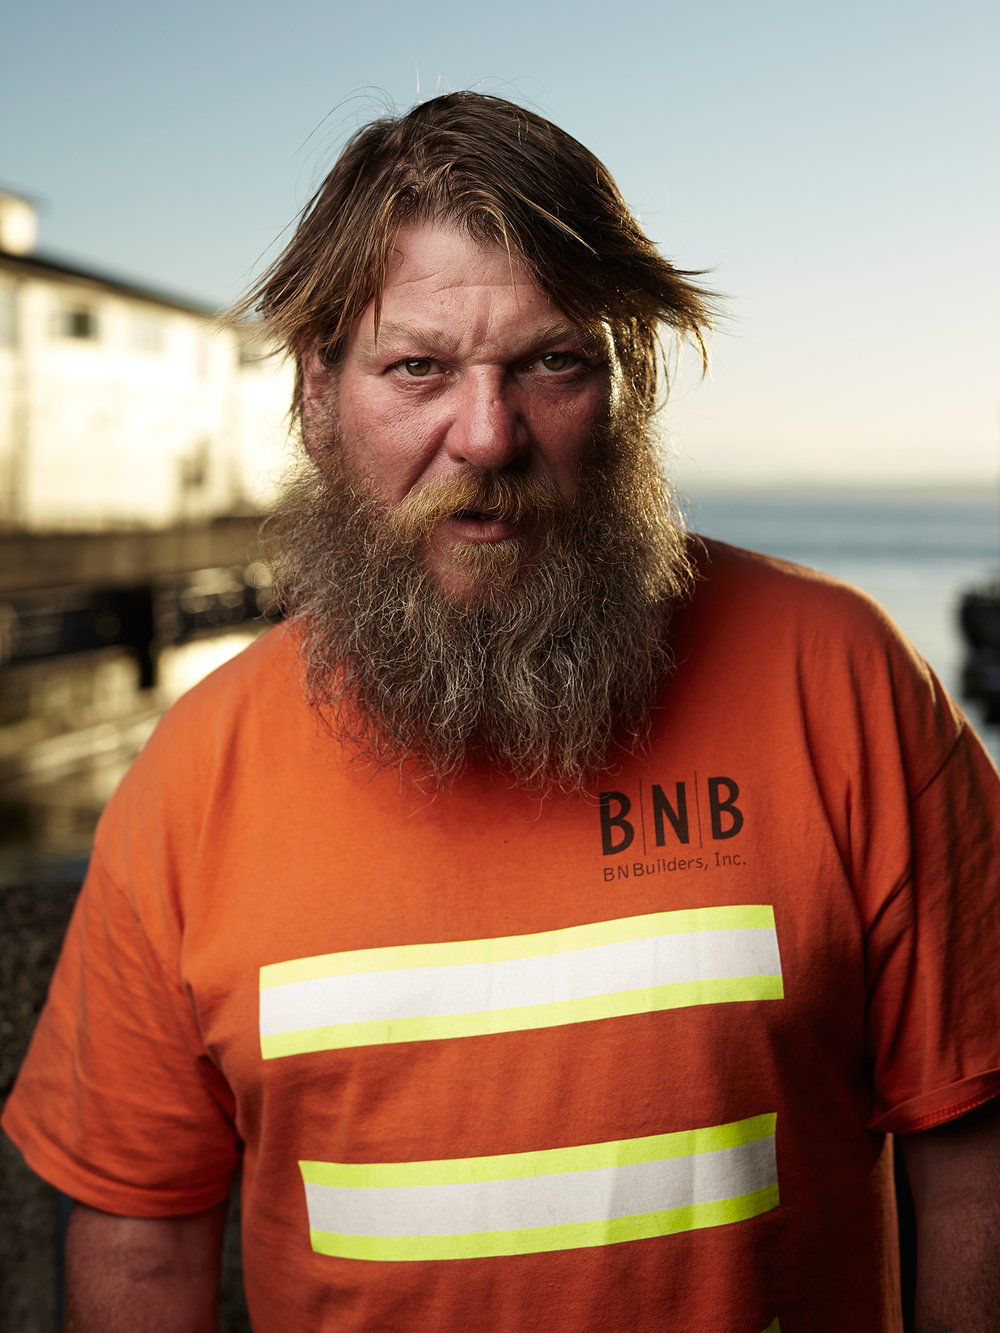 Jimmy is new to Seattle, only having lived here for two months. He may be the most coherent, well-spoken homeless man I've met in Seattle. He's got a job lined up in construction, and aspires to fish for a living soon. I suspect he won't be homeless for long.